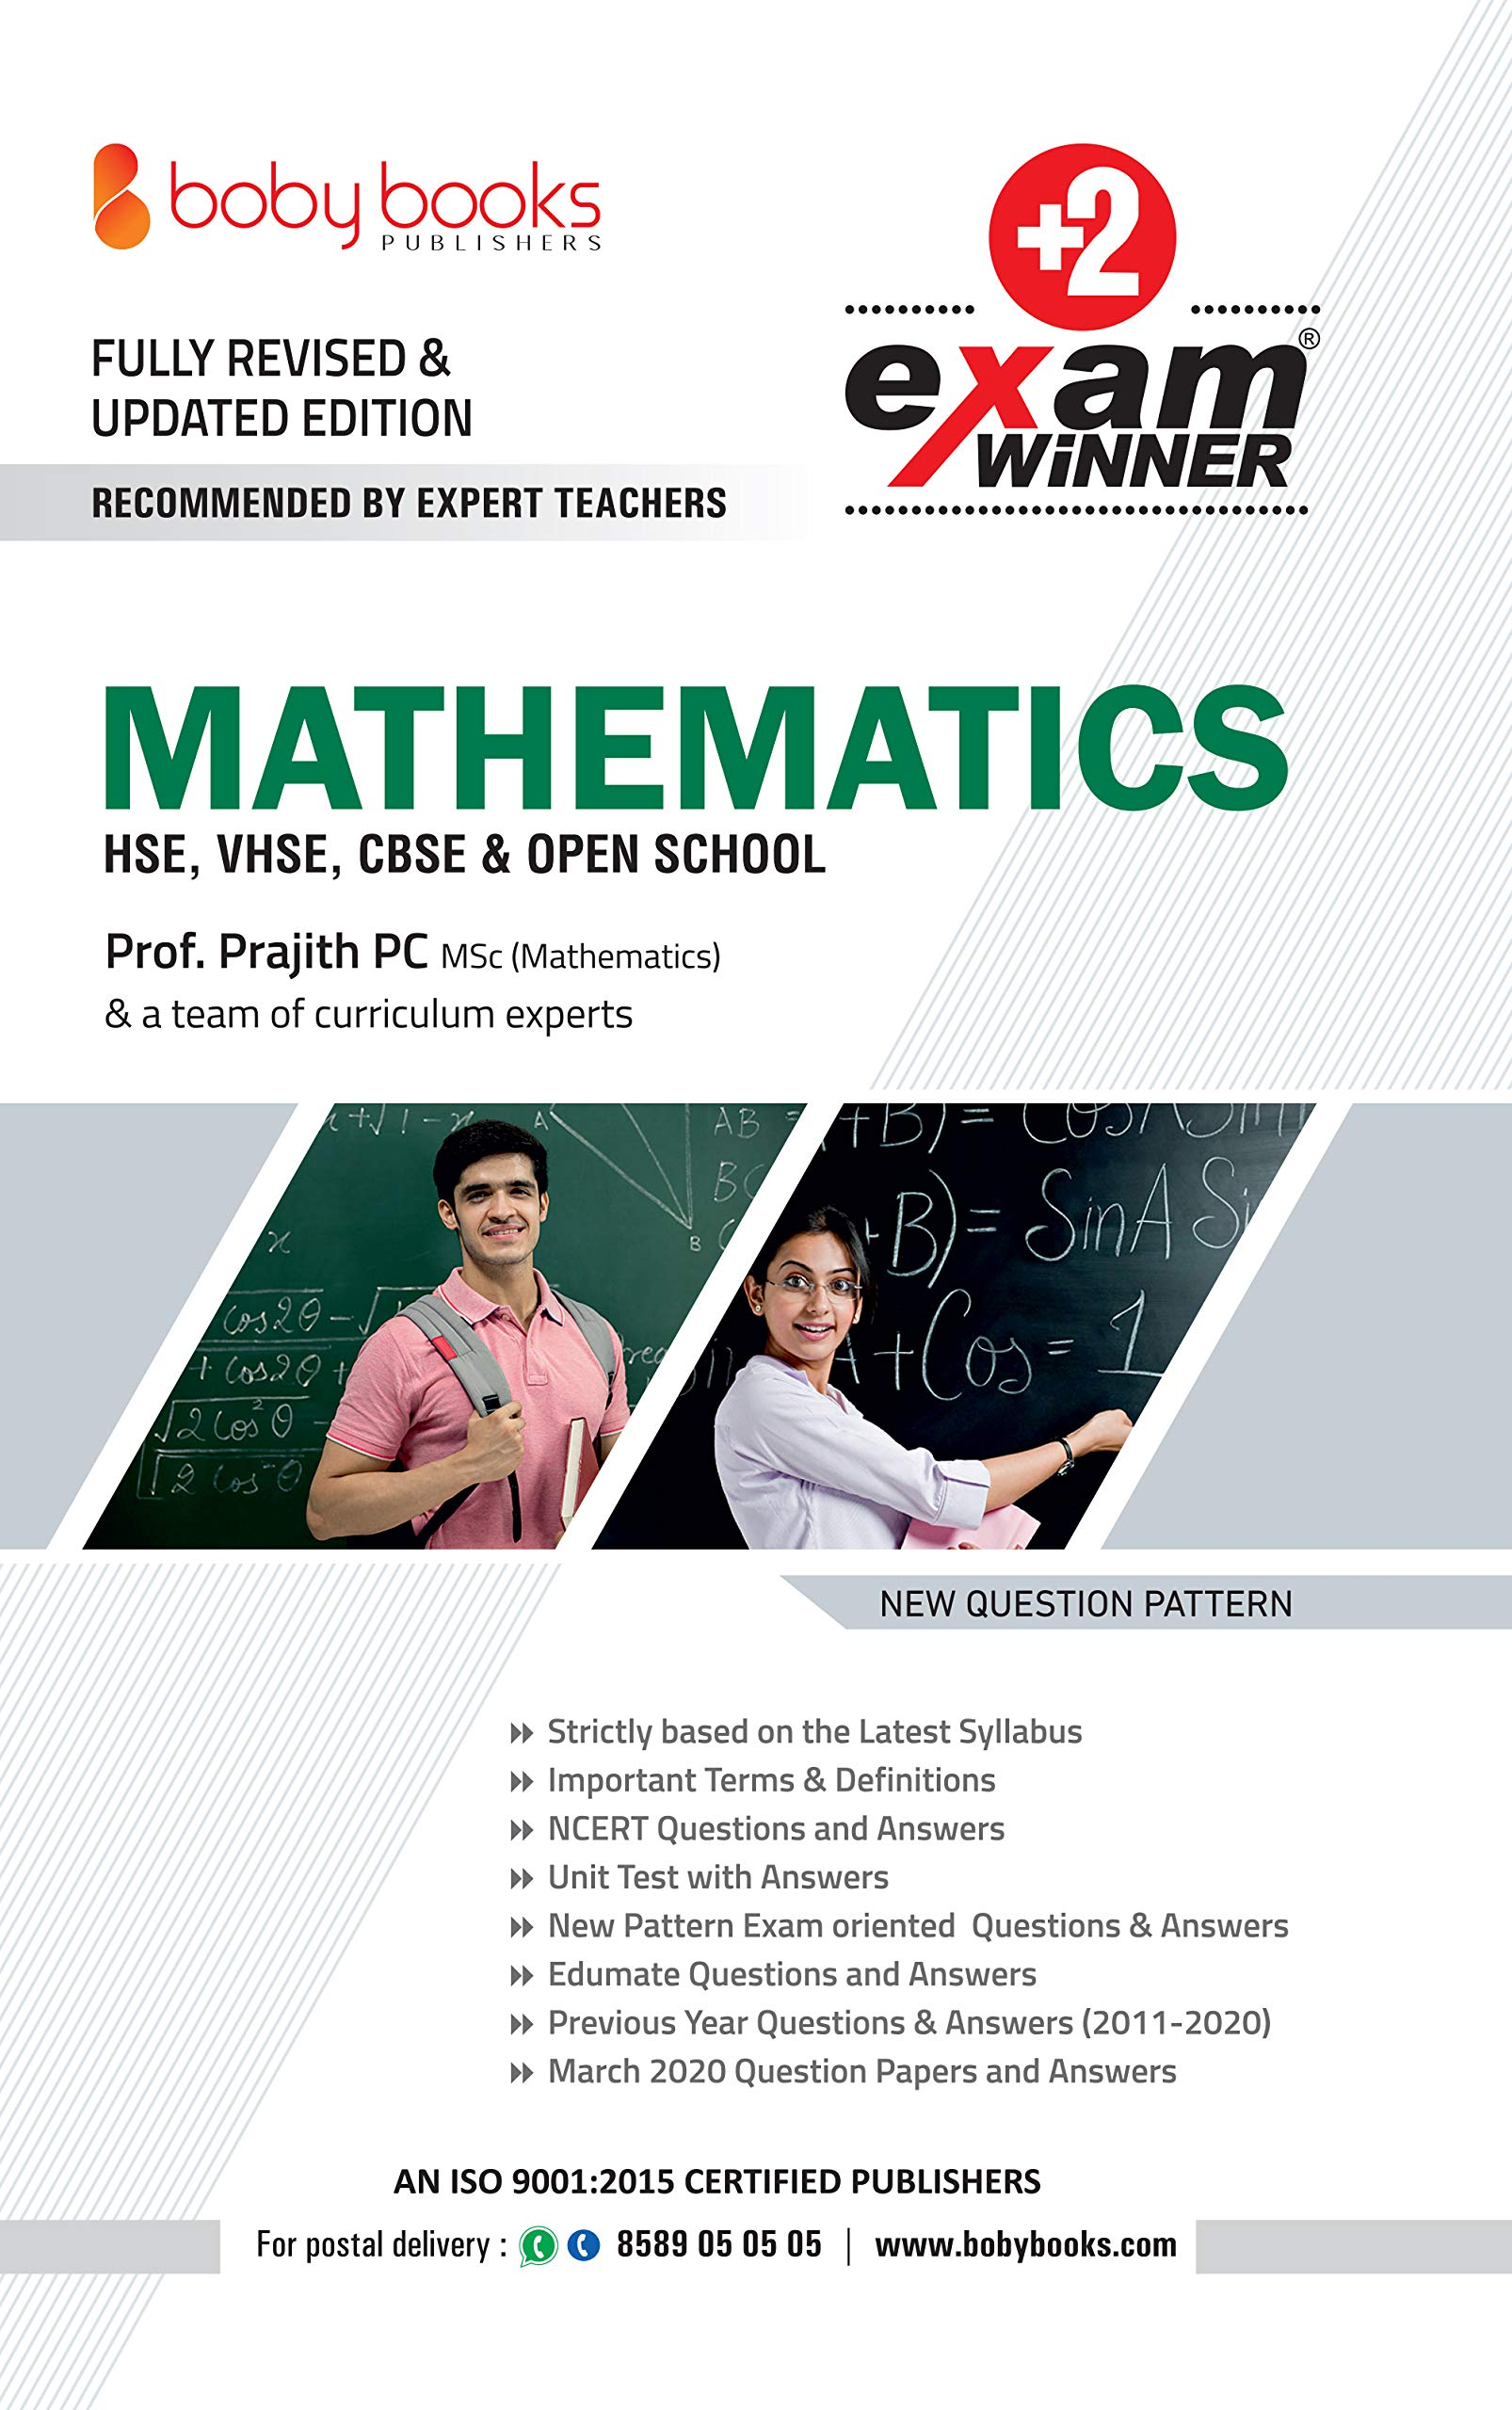 Buy Plus Two / Class 12 Mathematics Exam Winner Boby Books (KERALA SYLLABUS)  Book Online at Low Prices in India | Plus Two / Class 12 Mathematics Exam  Winner Boby Books (KERALA